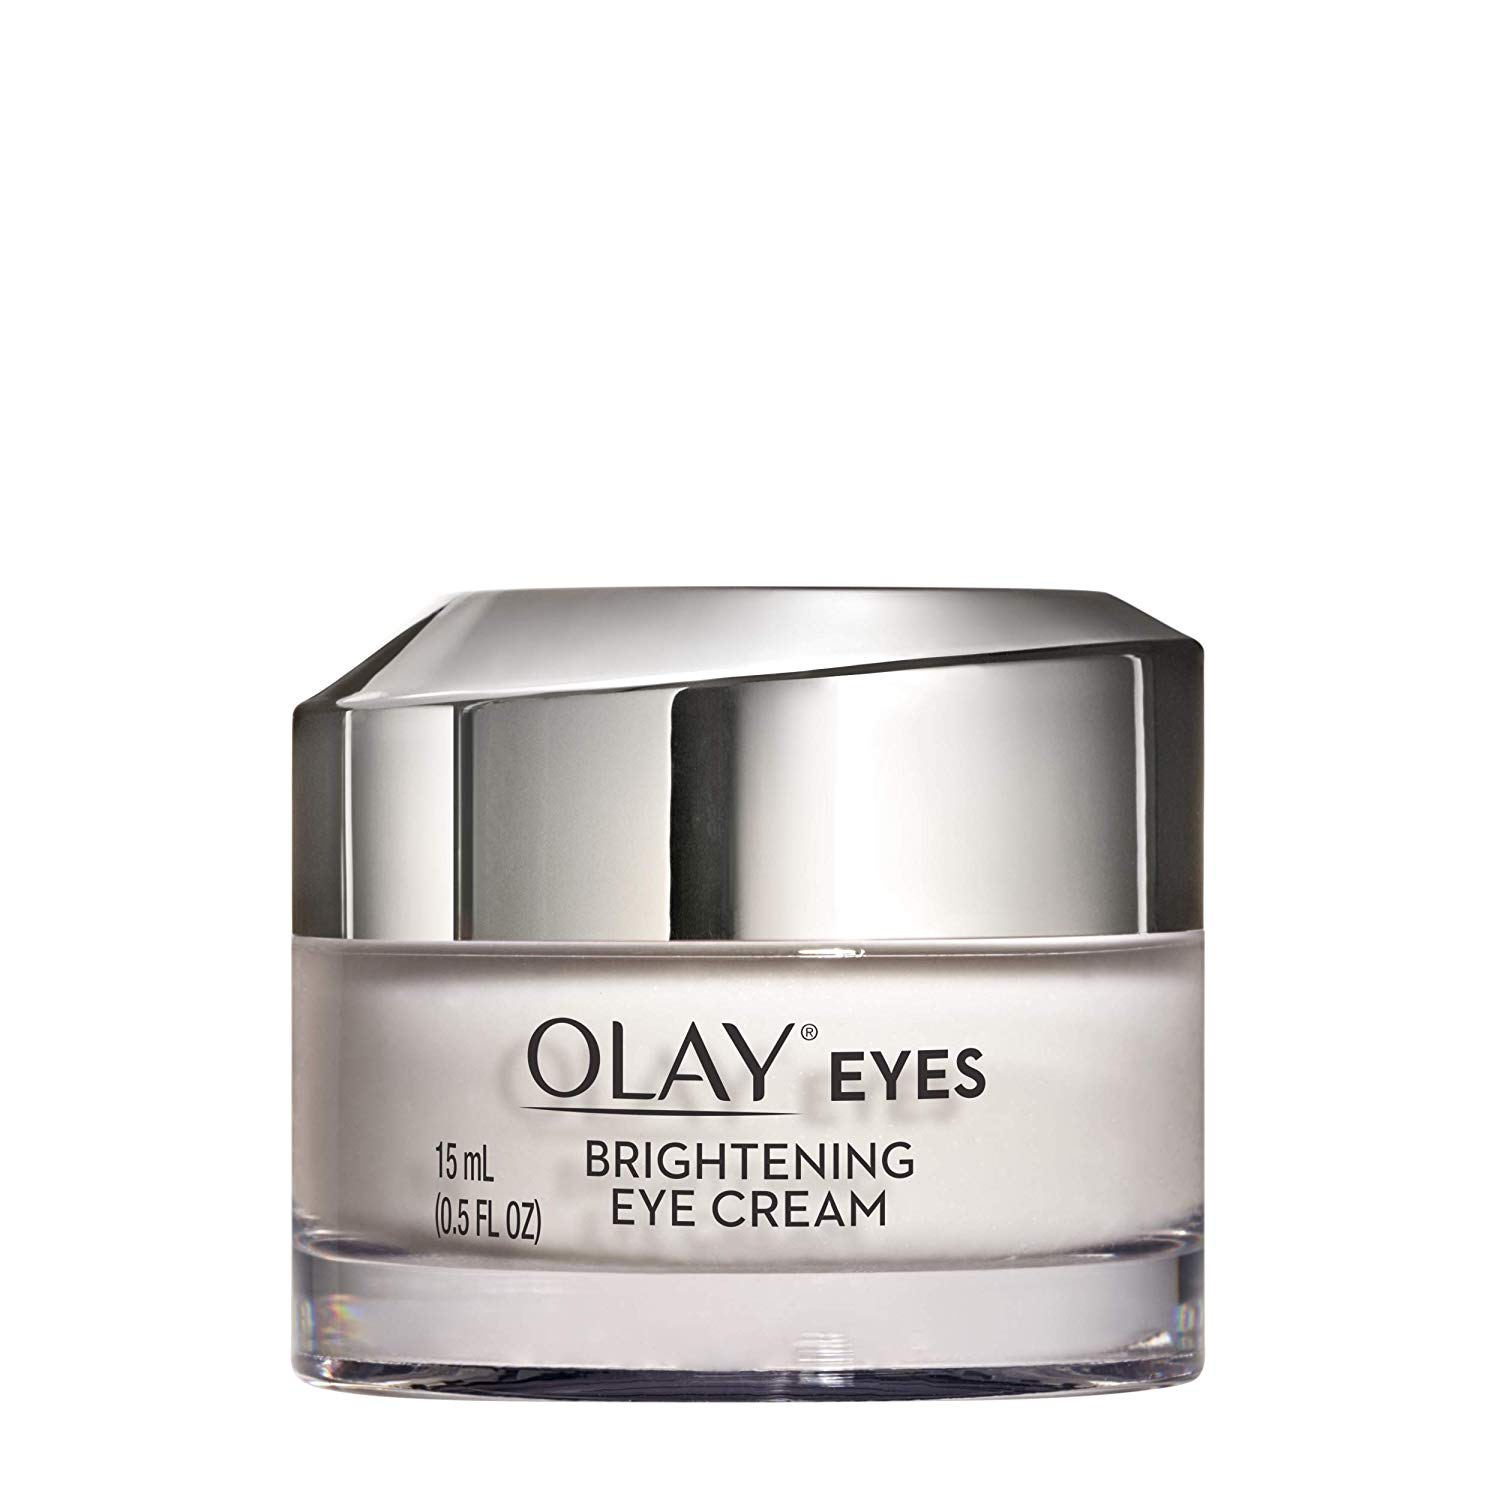 Olay Brightening Eye Cream